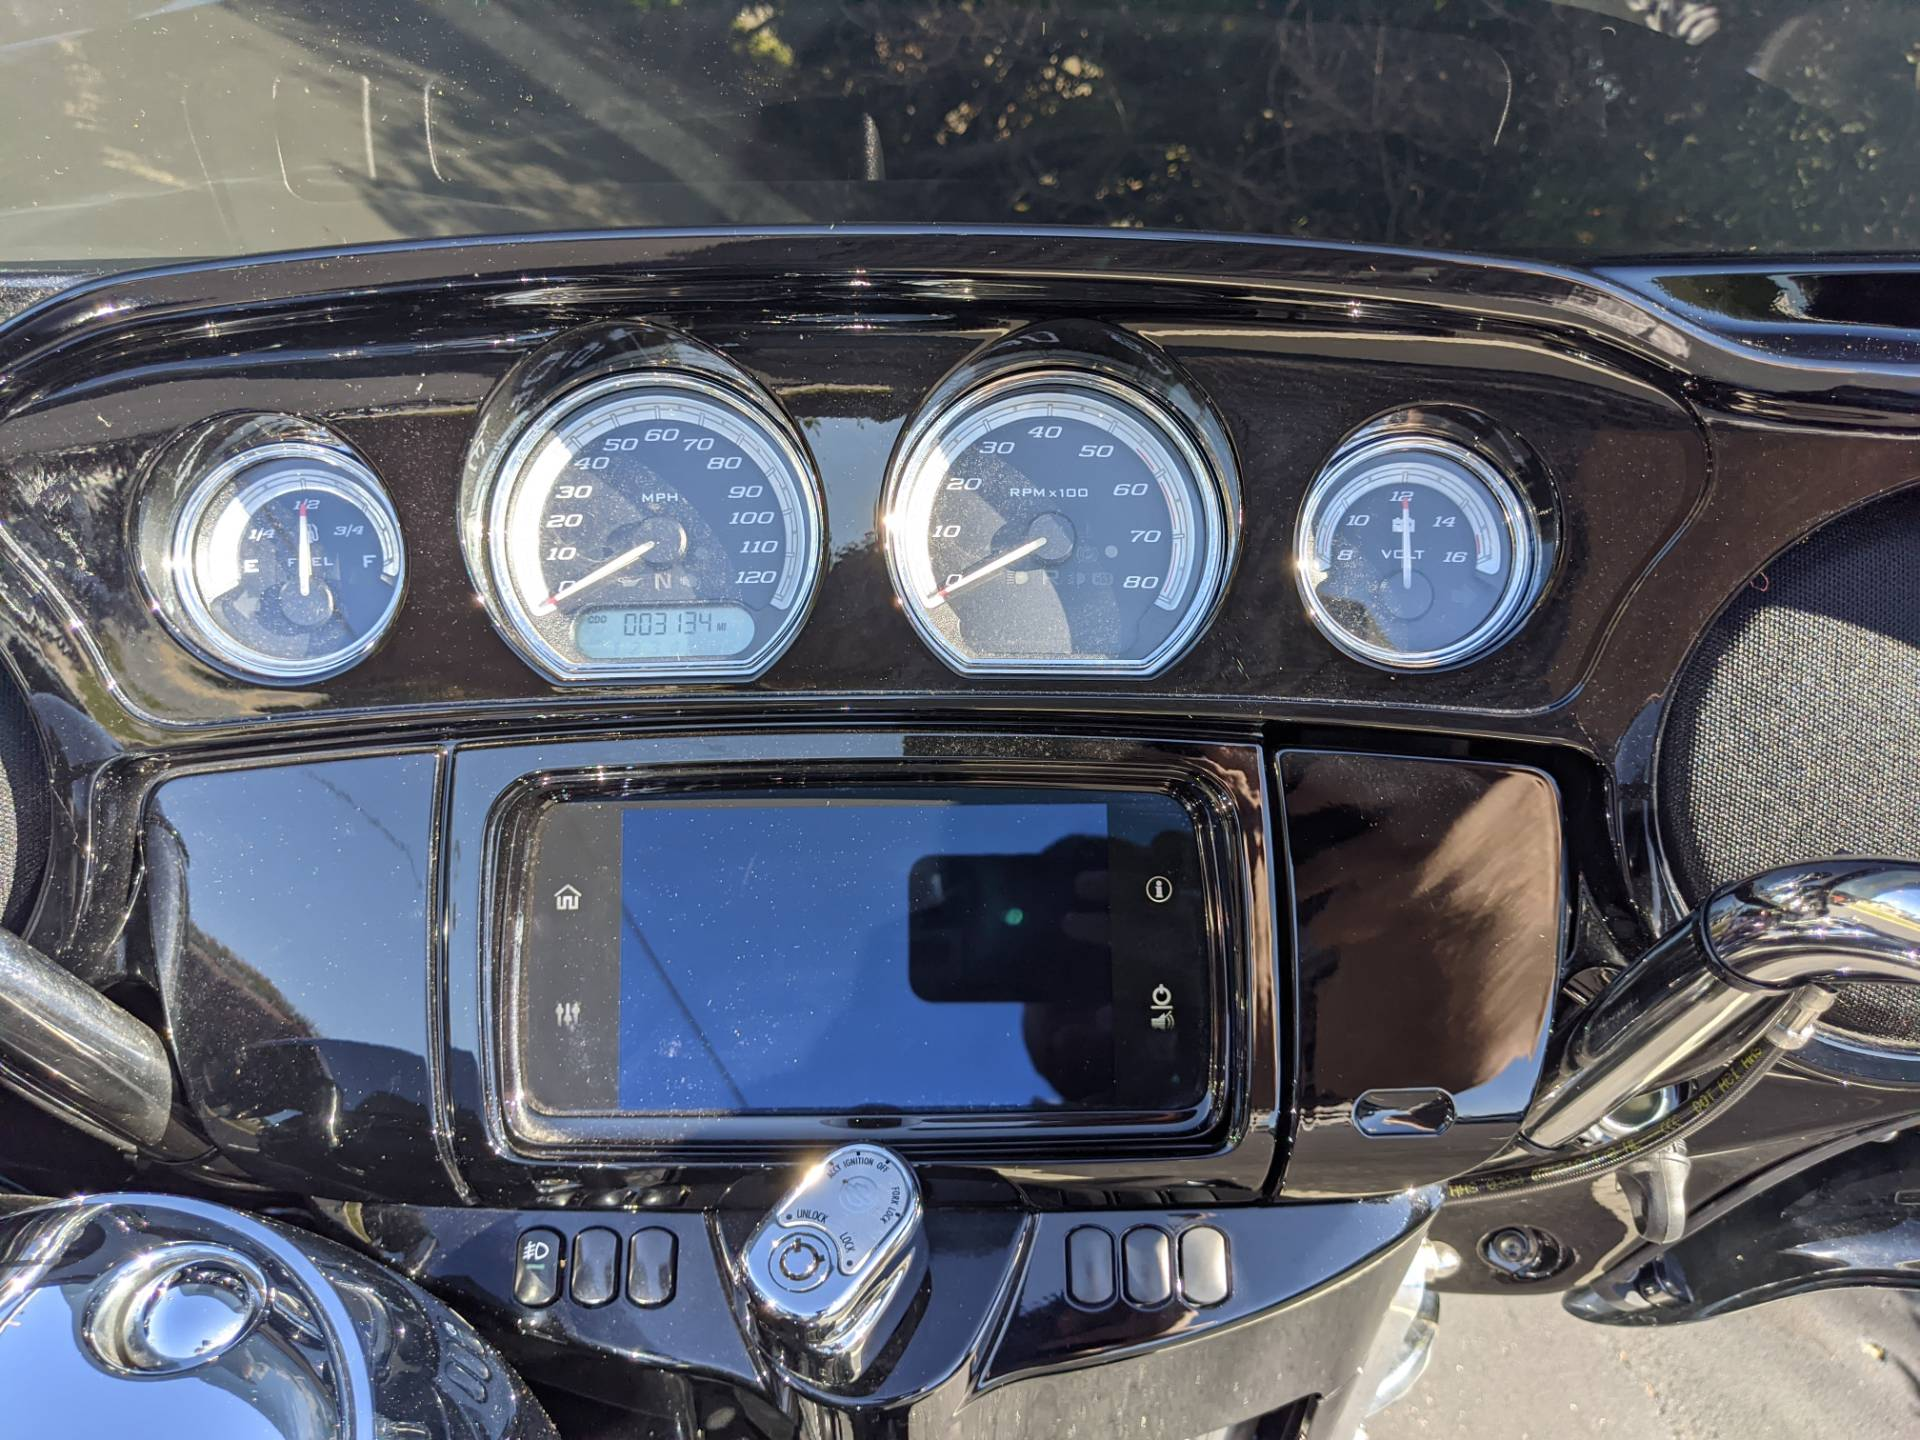 2019 Harley-Davidson Ultra Limited in Lynchburg, Virginia - Photo 19